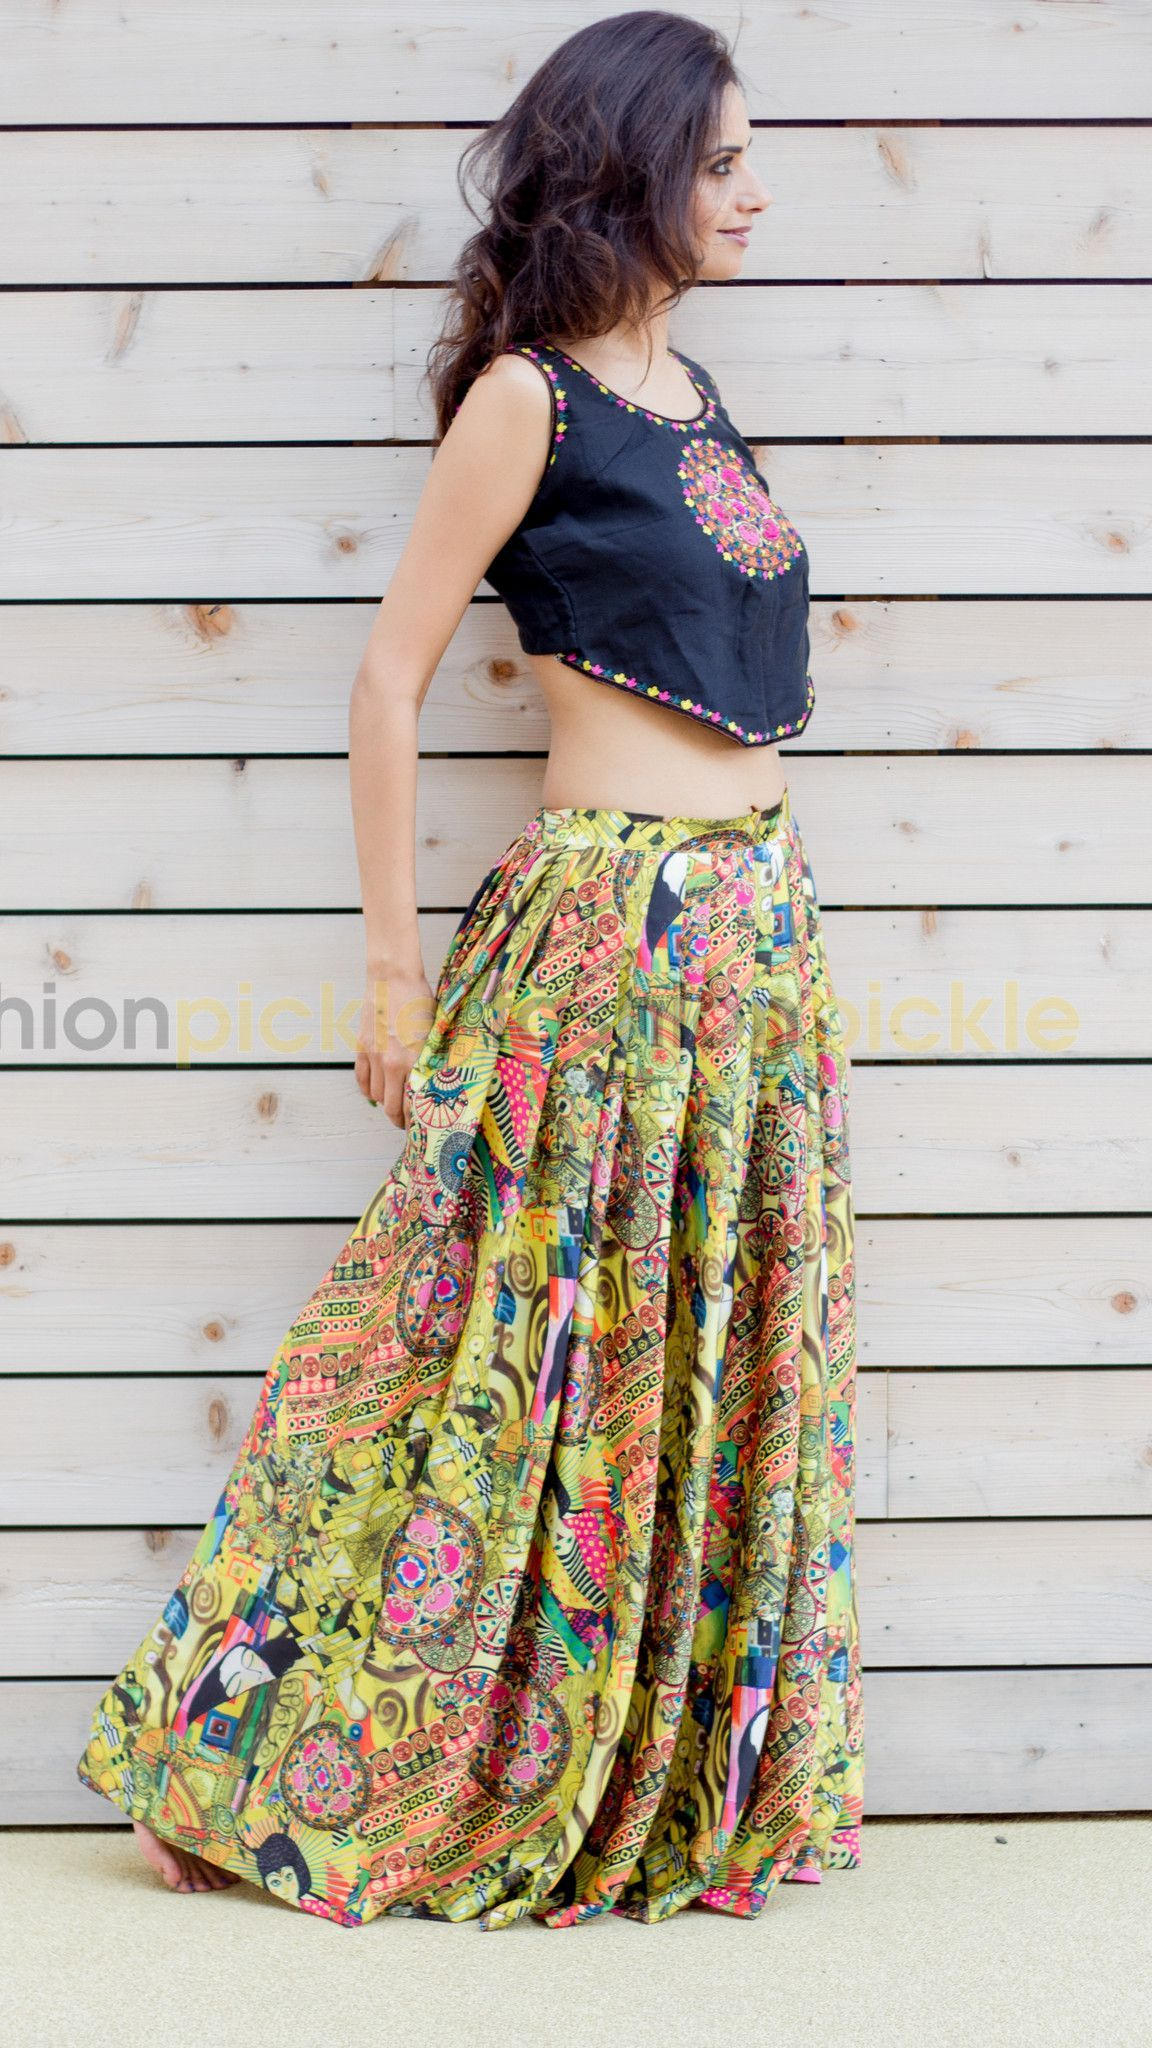 bb298ac16df6 Long Silk Pleated Skirt with Matching Crop Top in 2019 | p | Crop ...